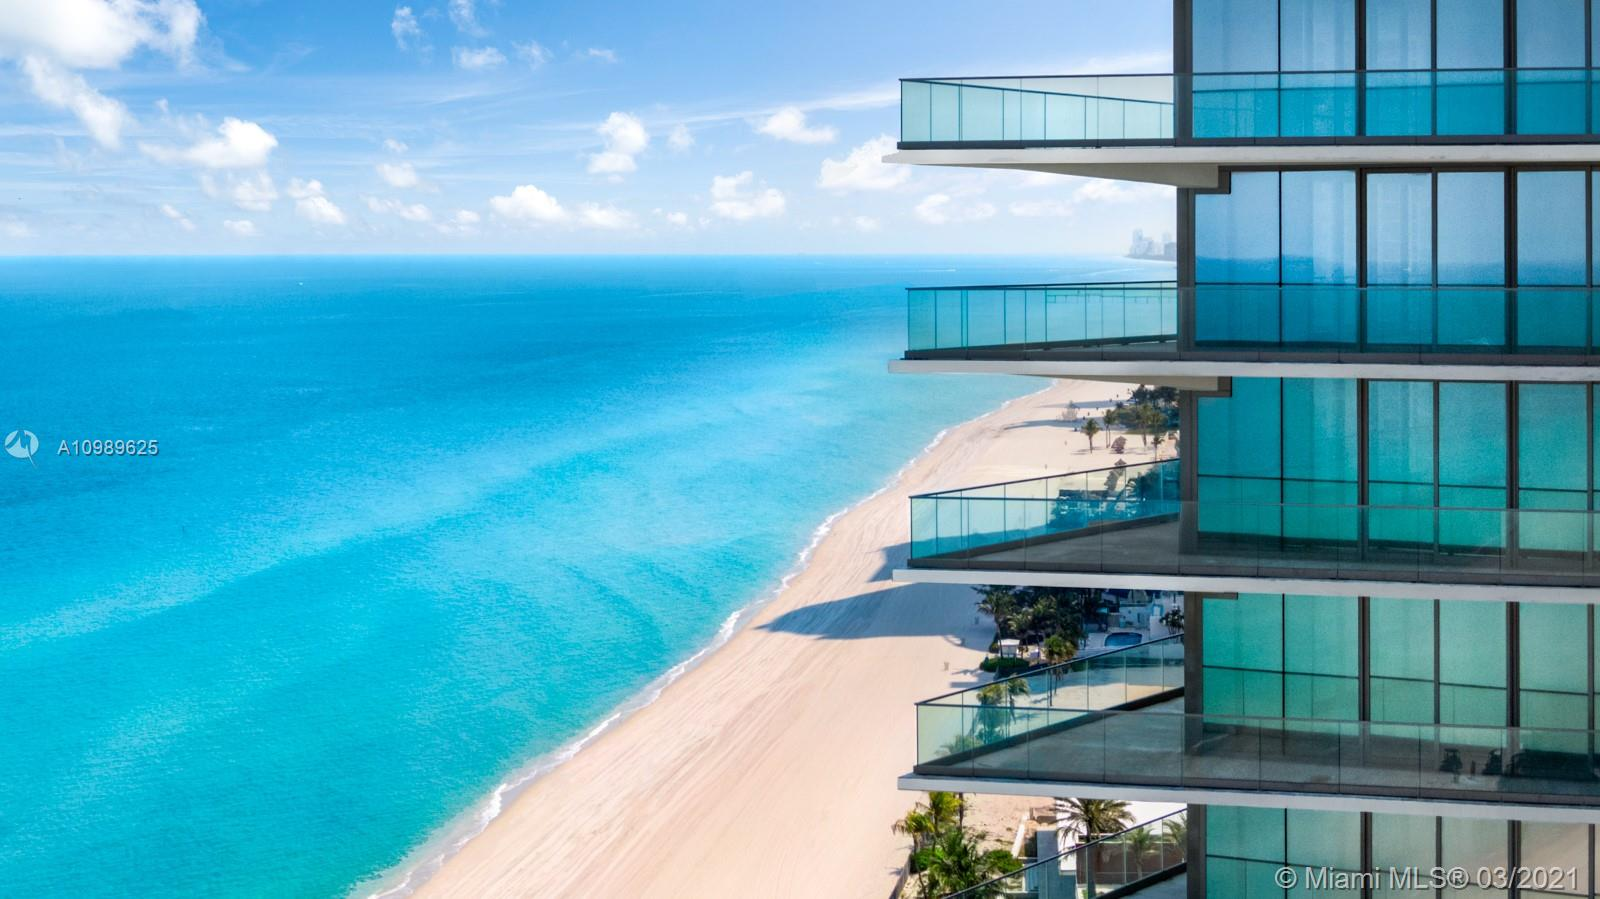 Armani Casa Tower #3700 *FURNISHED* - 18975 Collins Ave #3700 *FURNISHED*, Sunny Isles Beach, FL 33160